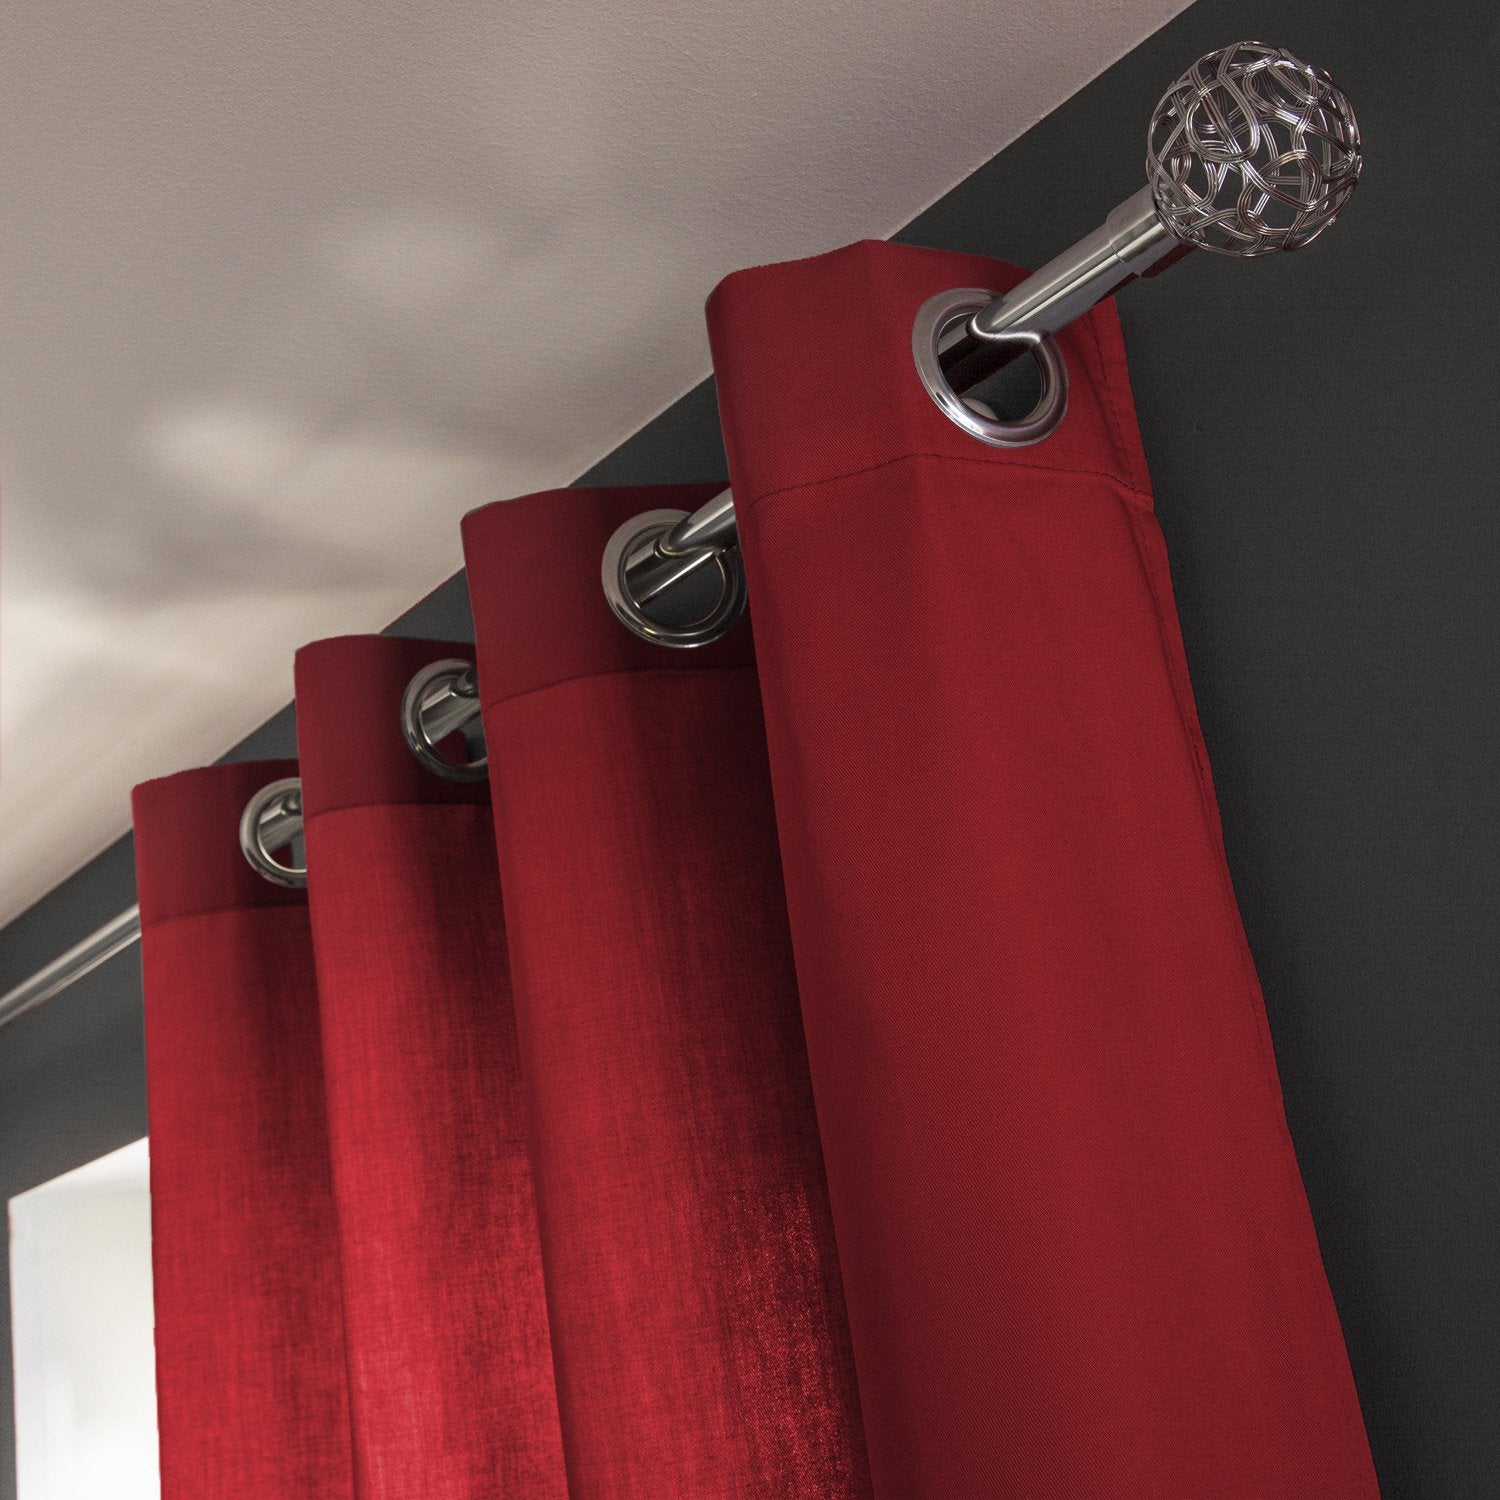 Rideau roma rouge rouge n 3 x cm inspire for Leroy merlin roma laurentina roma